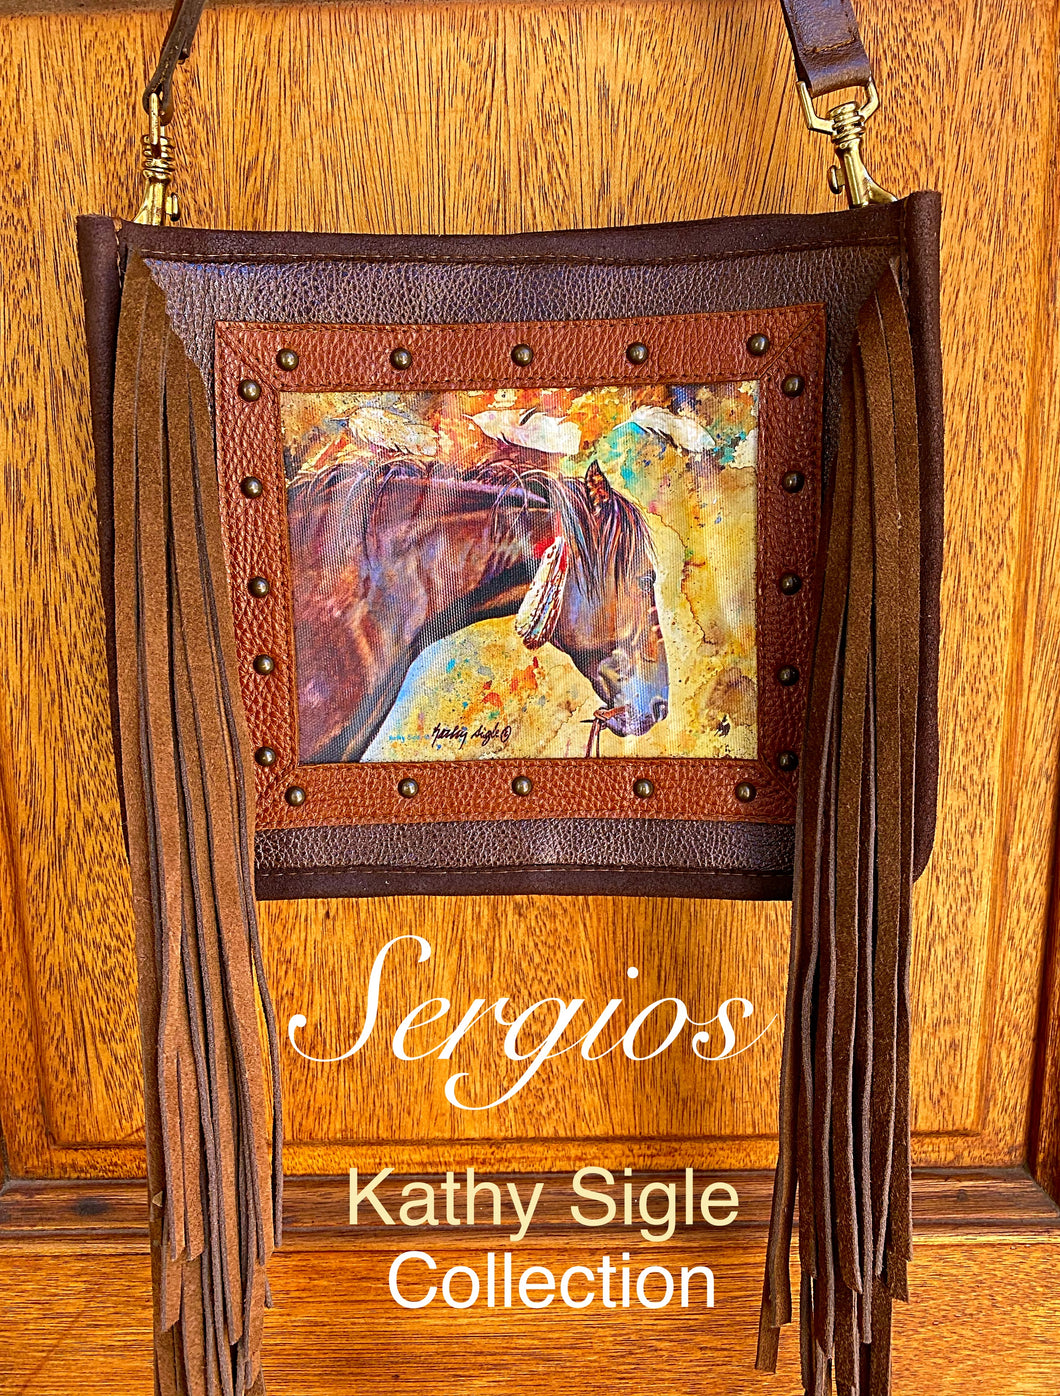 Sergios Collection/kathy Sigle art limited edition